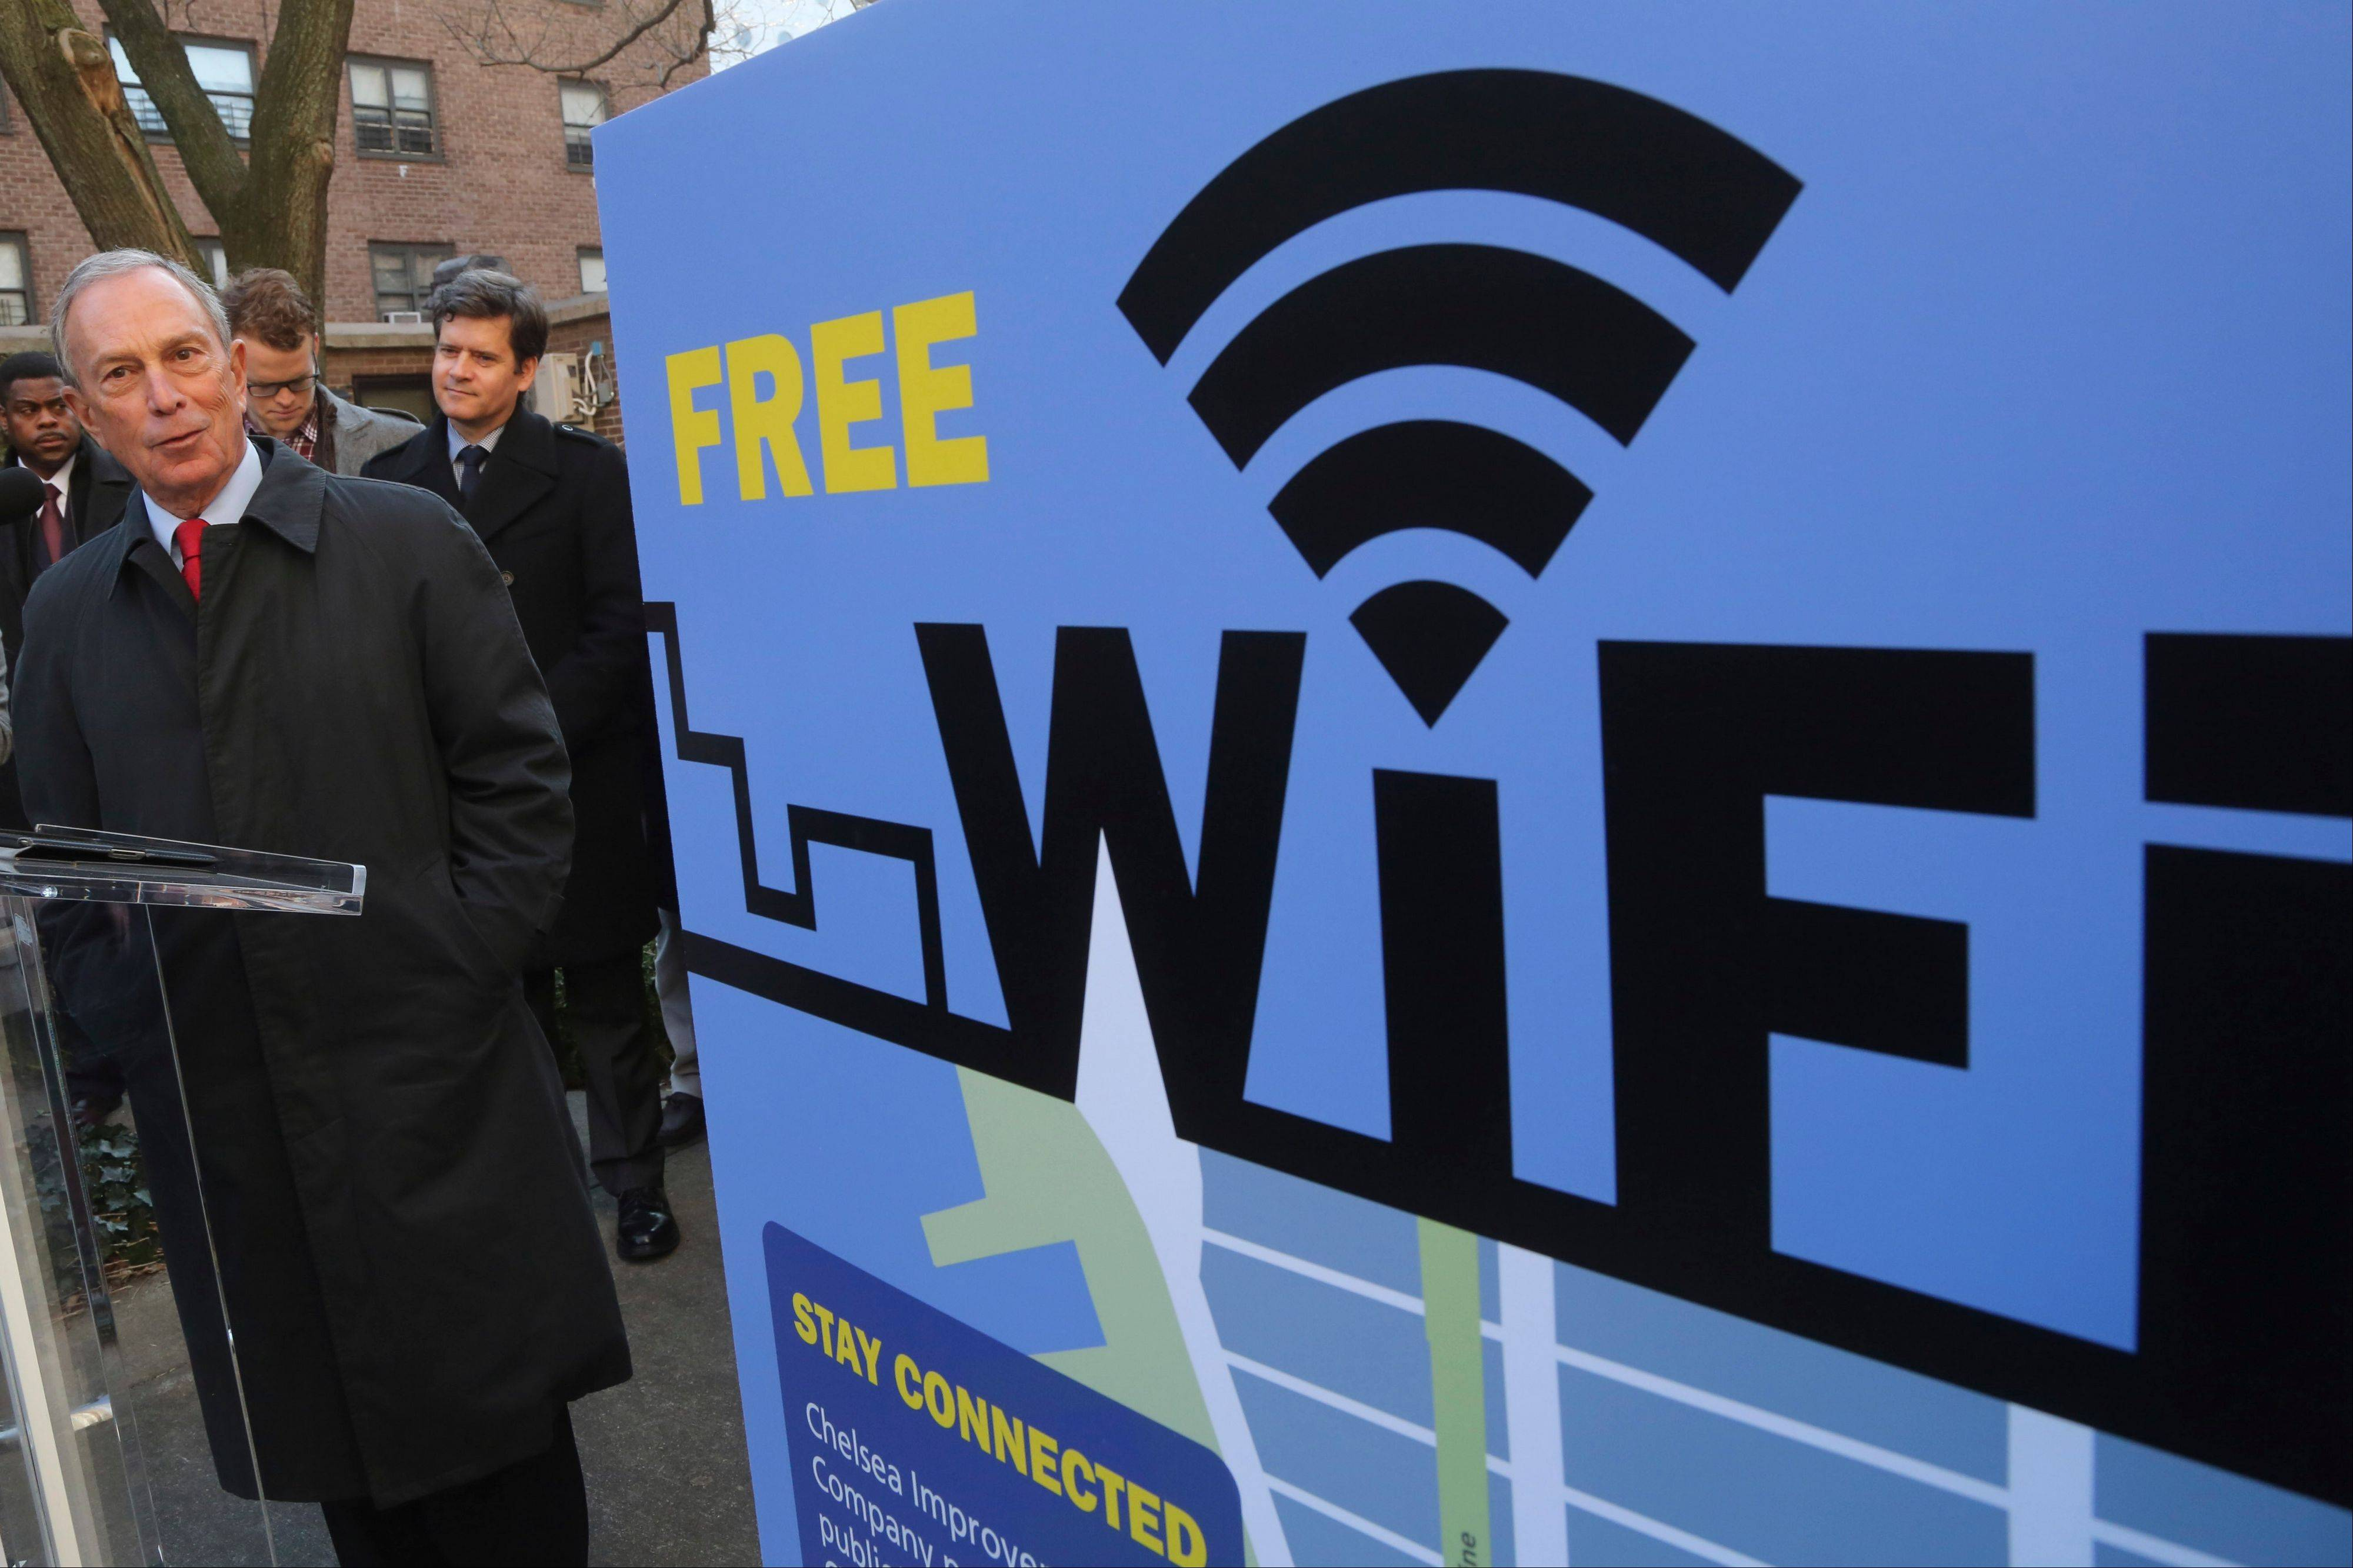 New York City Mayor Michael Bloomberg speaks Tuesday during a news conference in New York. Google and The Chelsea Improvement Company say they'll provide free public Wi-Fi in Manhattan's southwest Chelsea neighborhood.